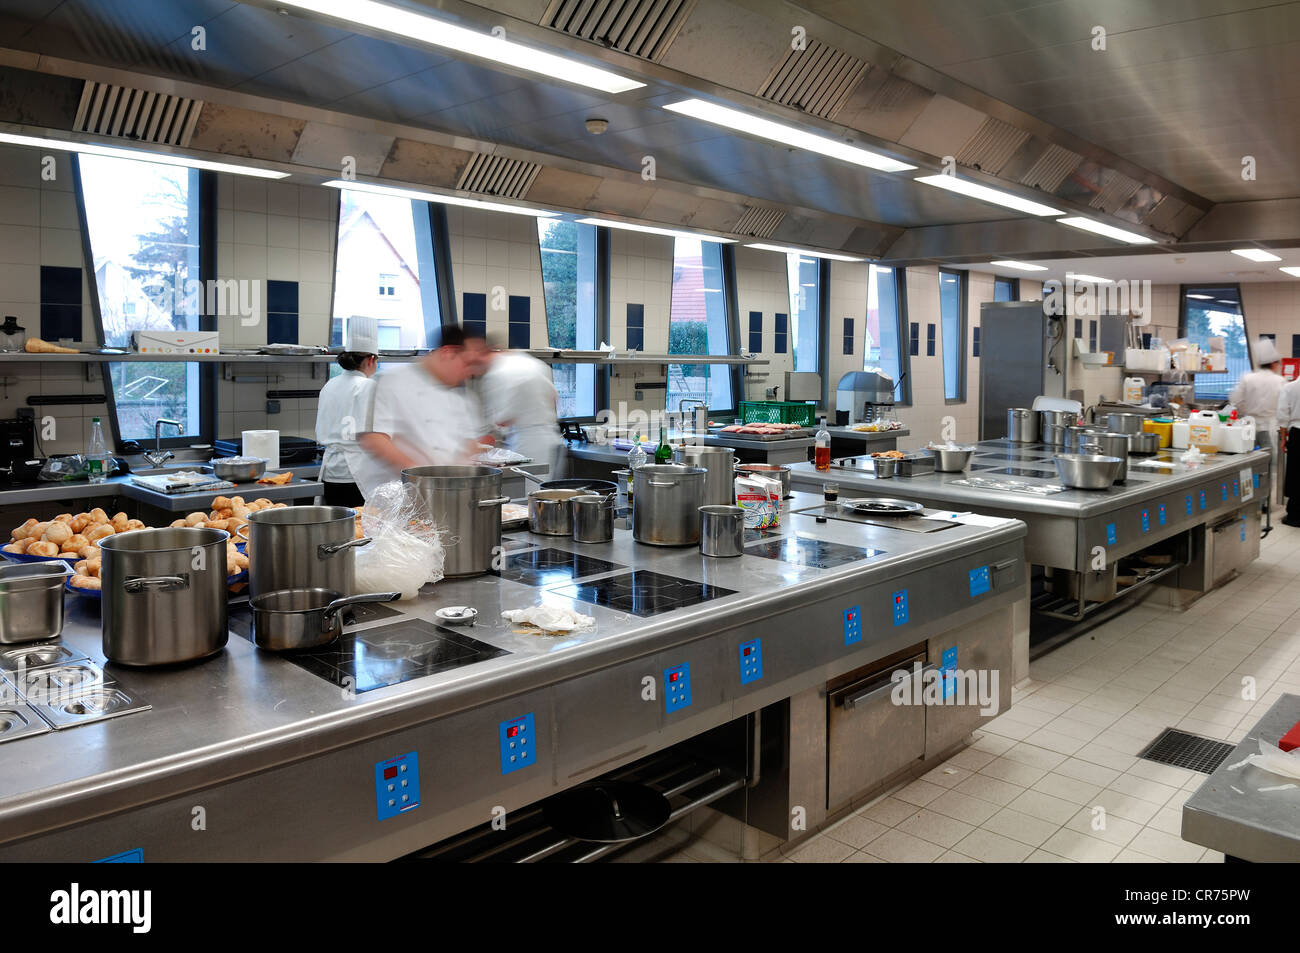 Kitchen Of A School Hotel Management Lycee Economique Et Hotelier Joseph Storck Trainees Motion Blur